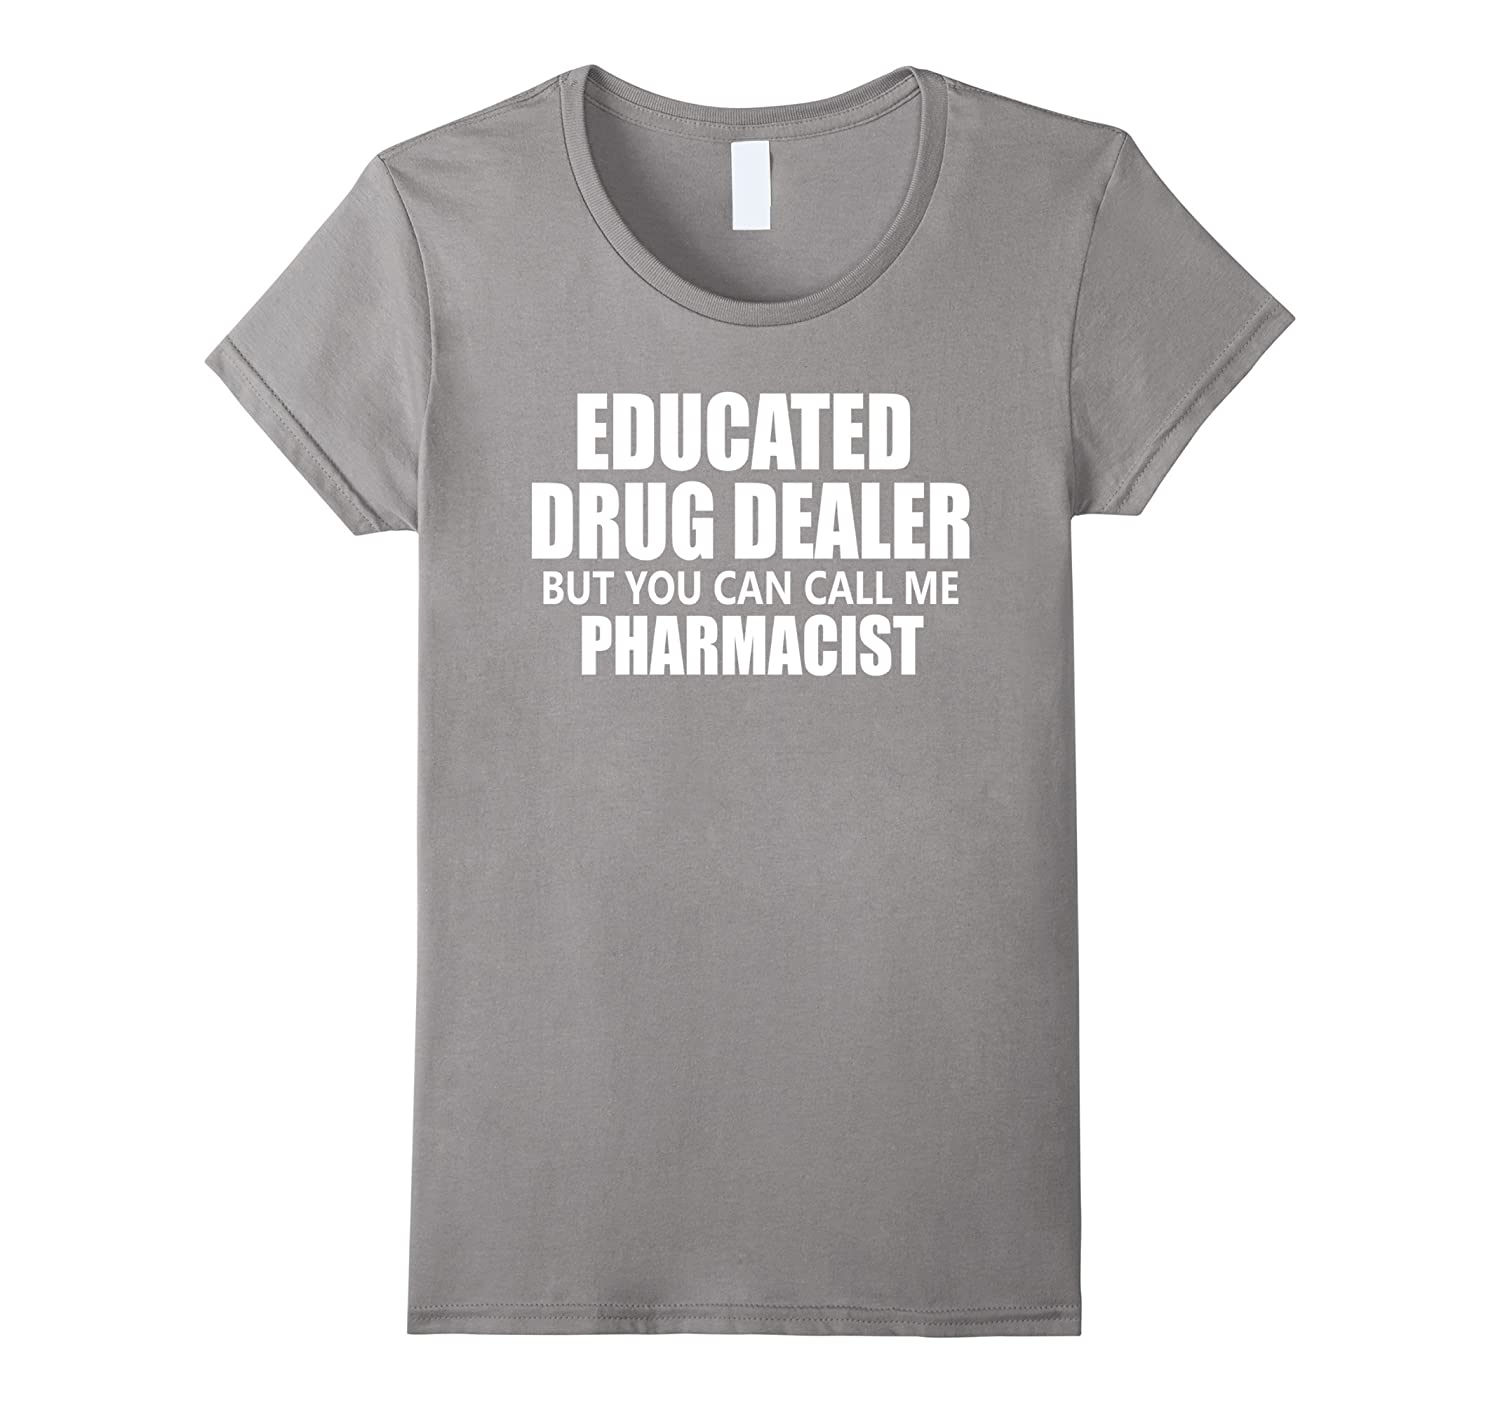 Educated Drug Dealer But You Can Call Me Pharmacist Shirt